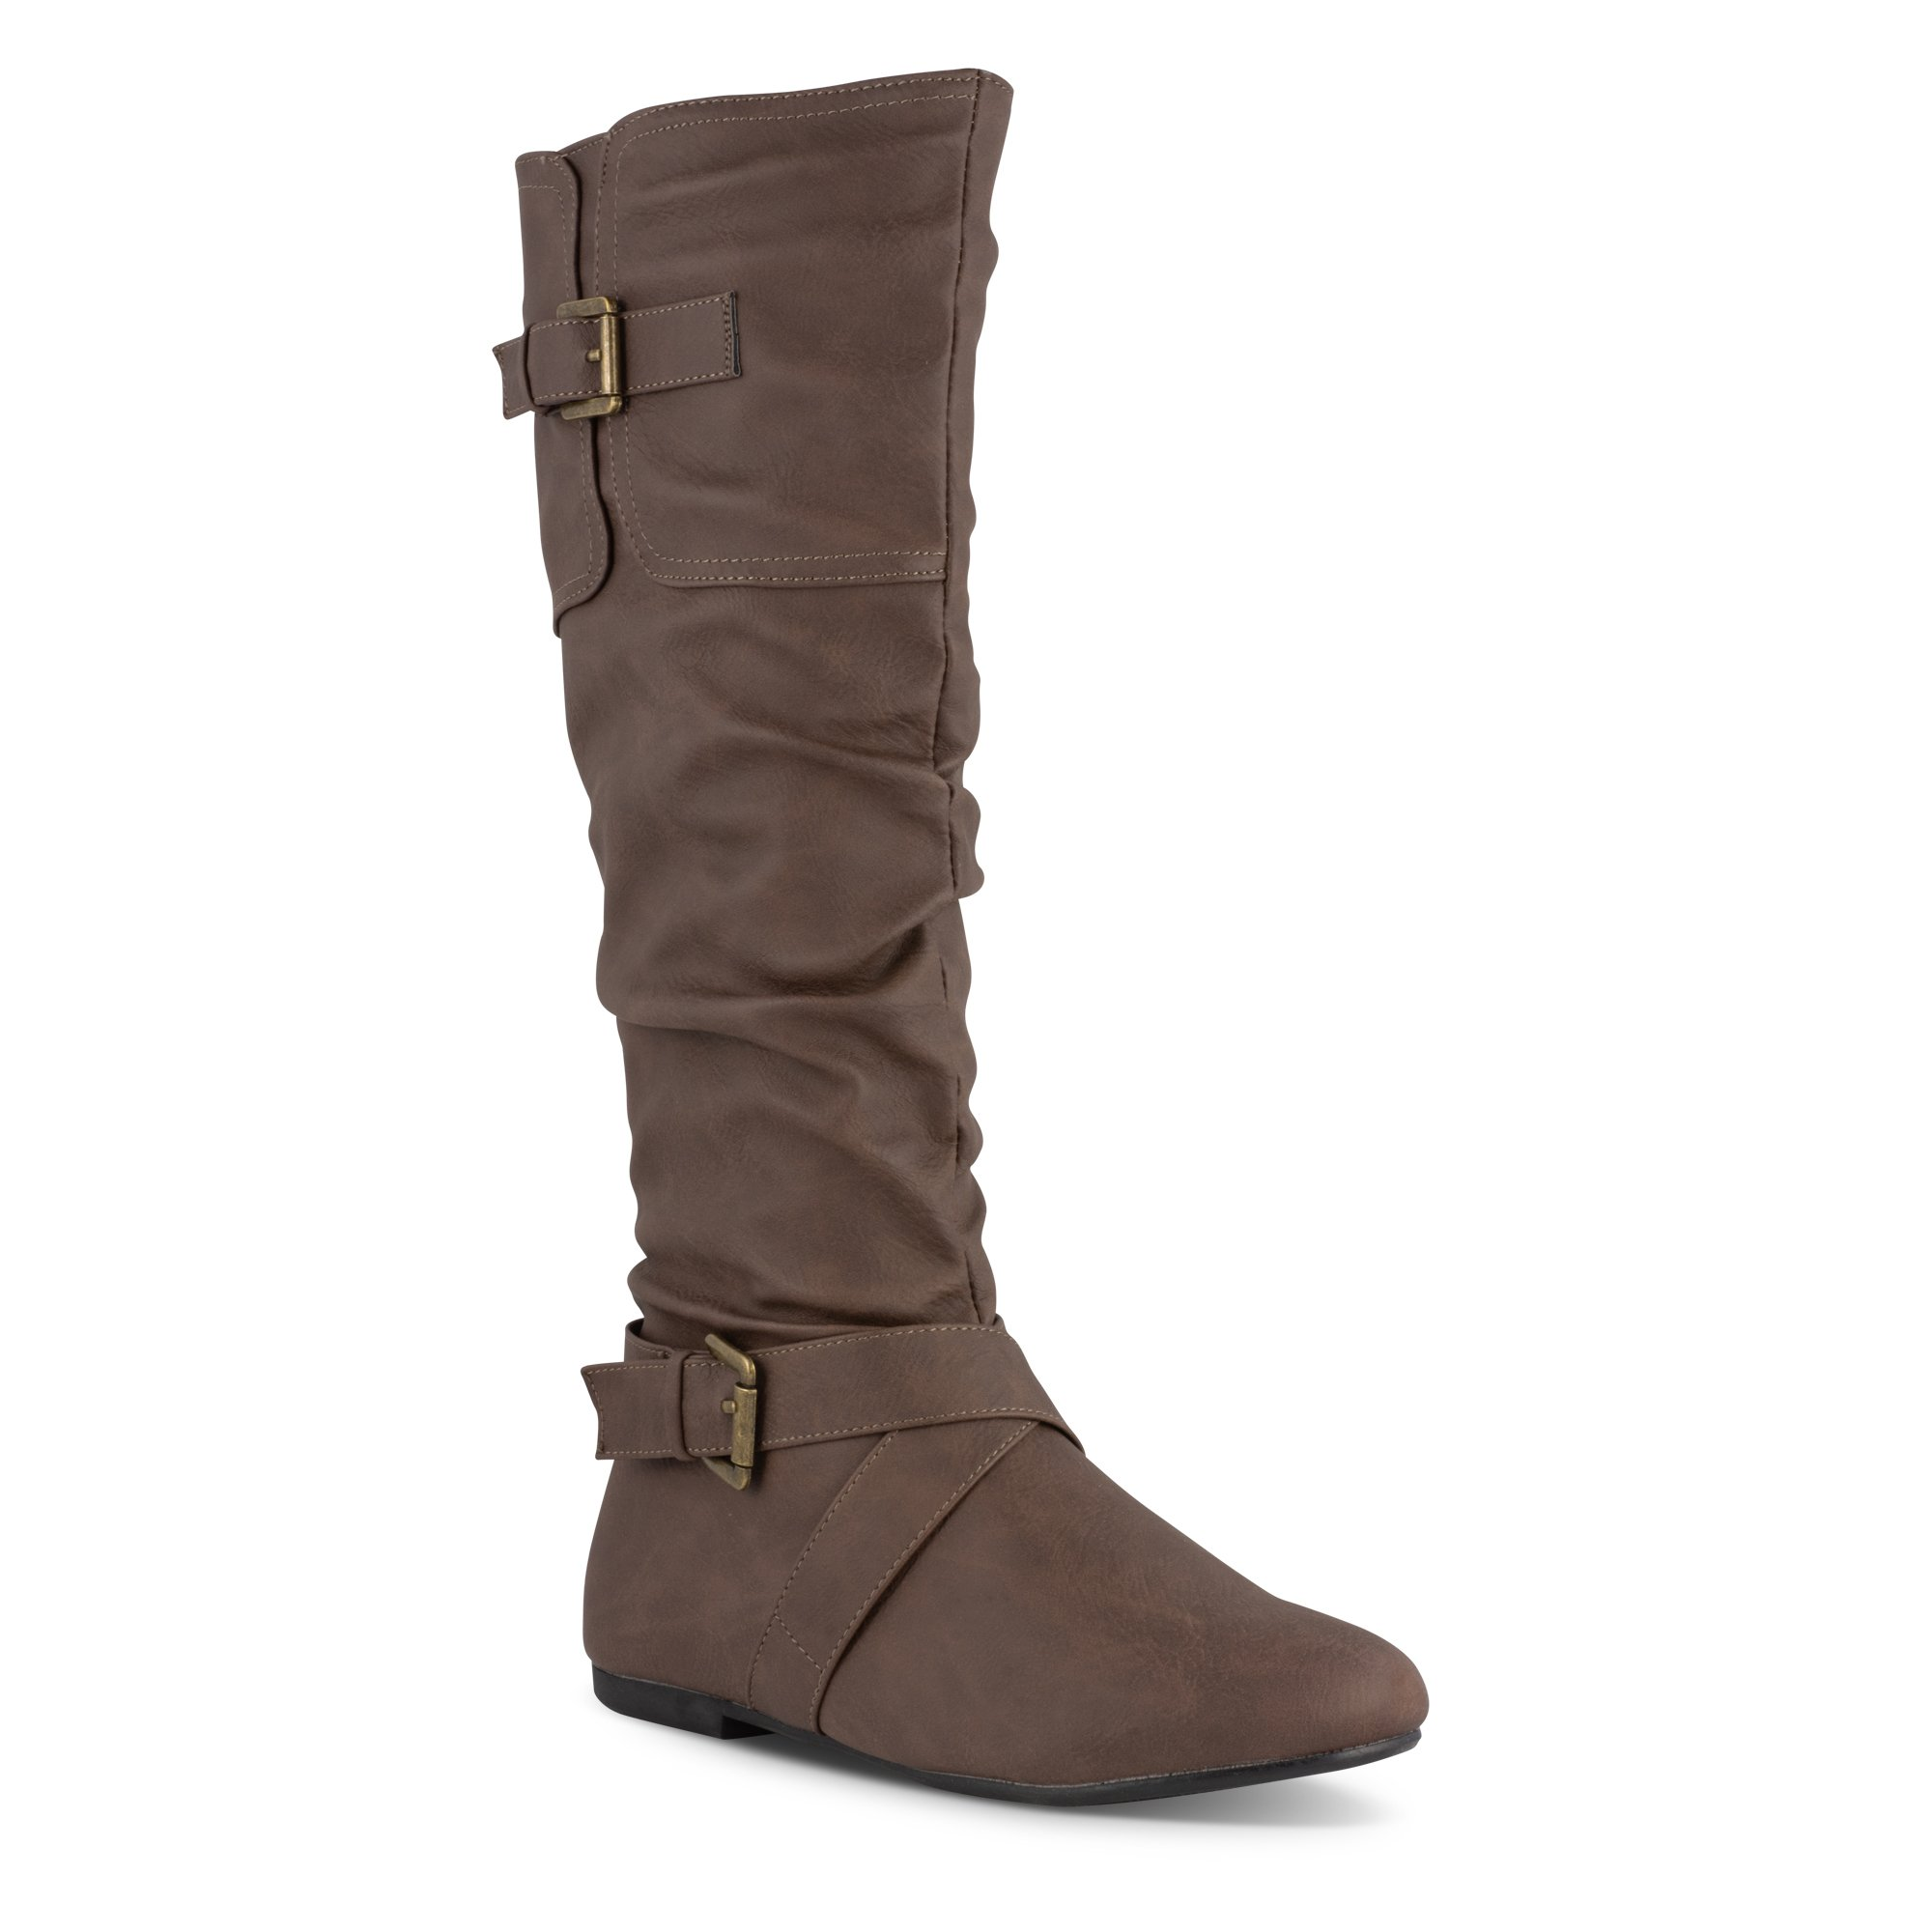 Twisted Women's Faux Leather Slouchy Buckle Strap Mid Calf Boots - VAN0109 Brown, Size 11